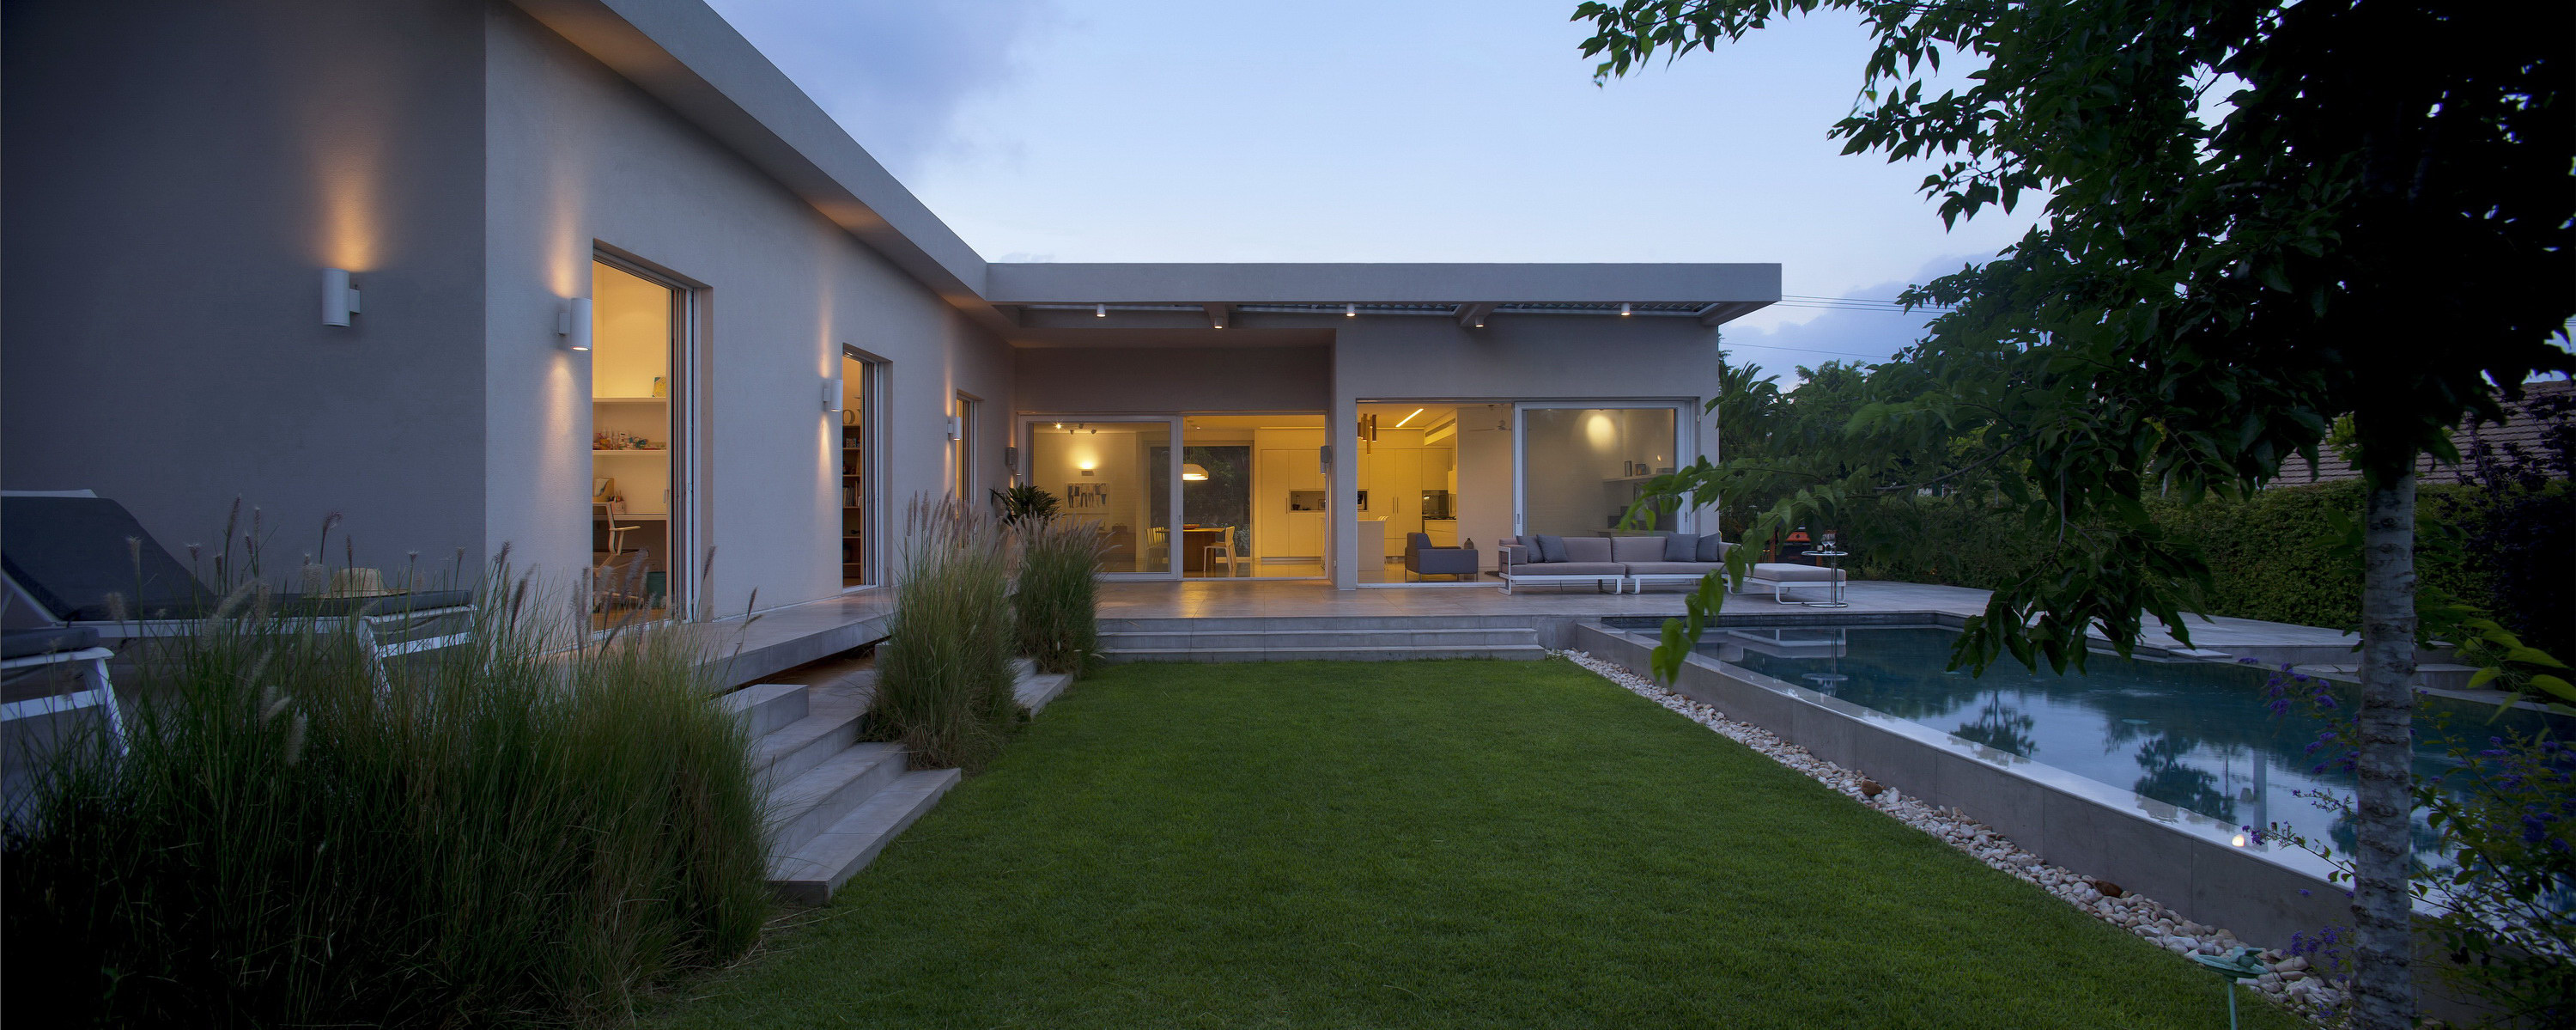 Family as a Community by Jacobs-Yaniv Architects